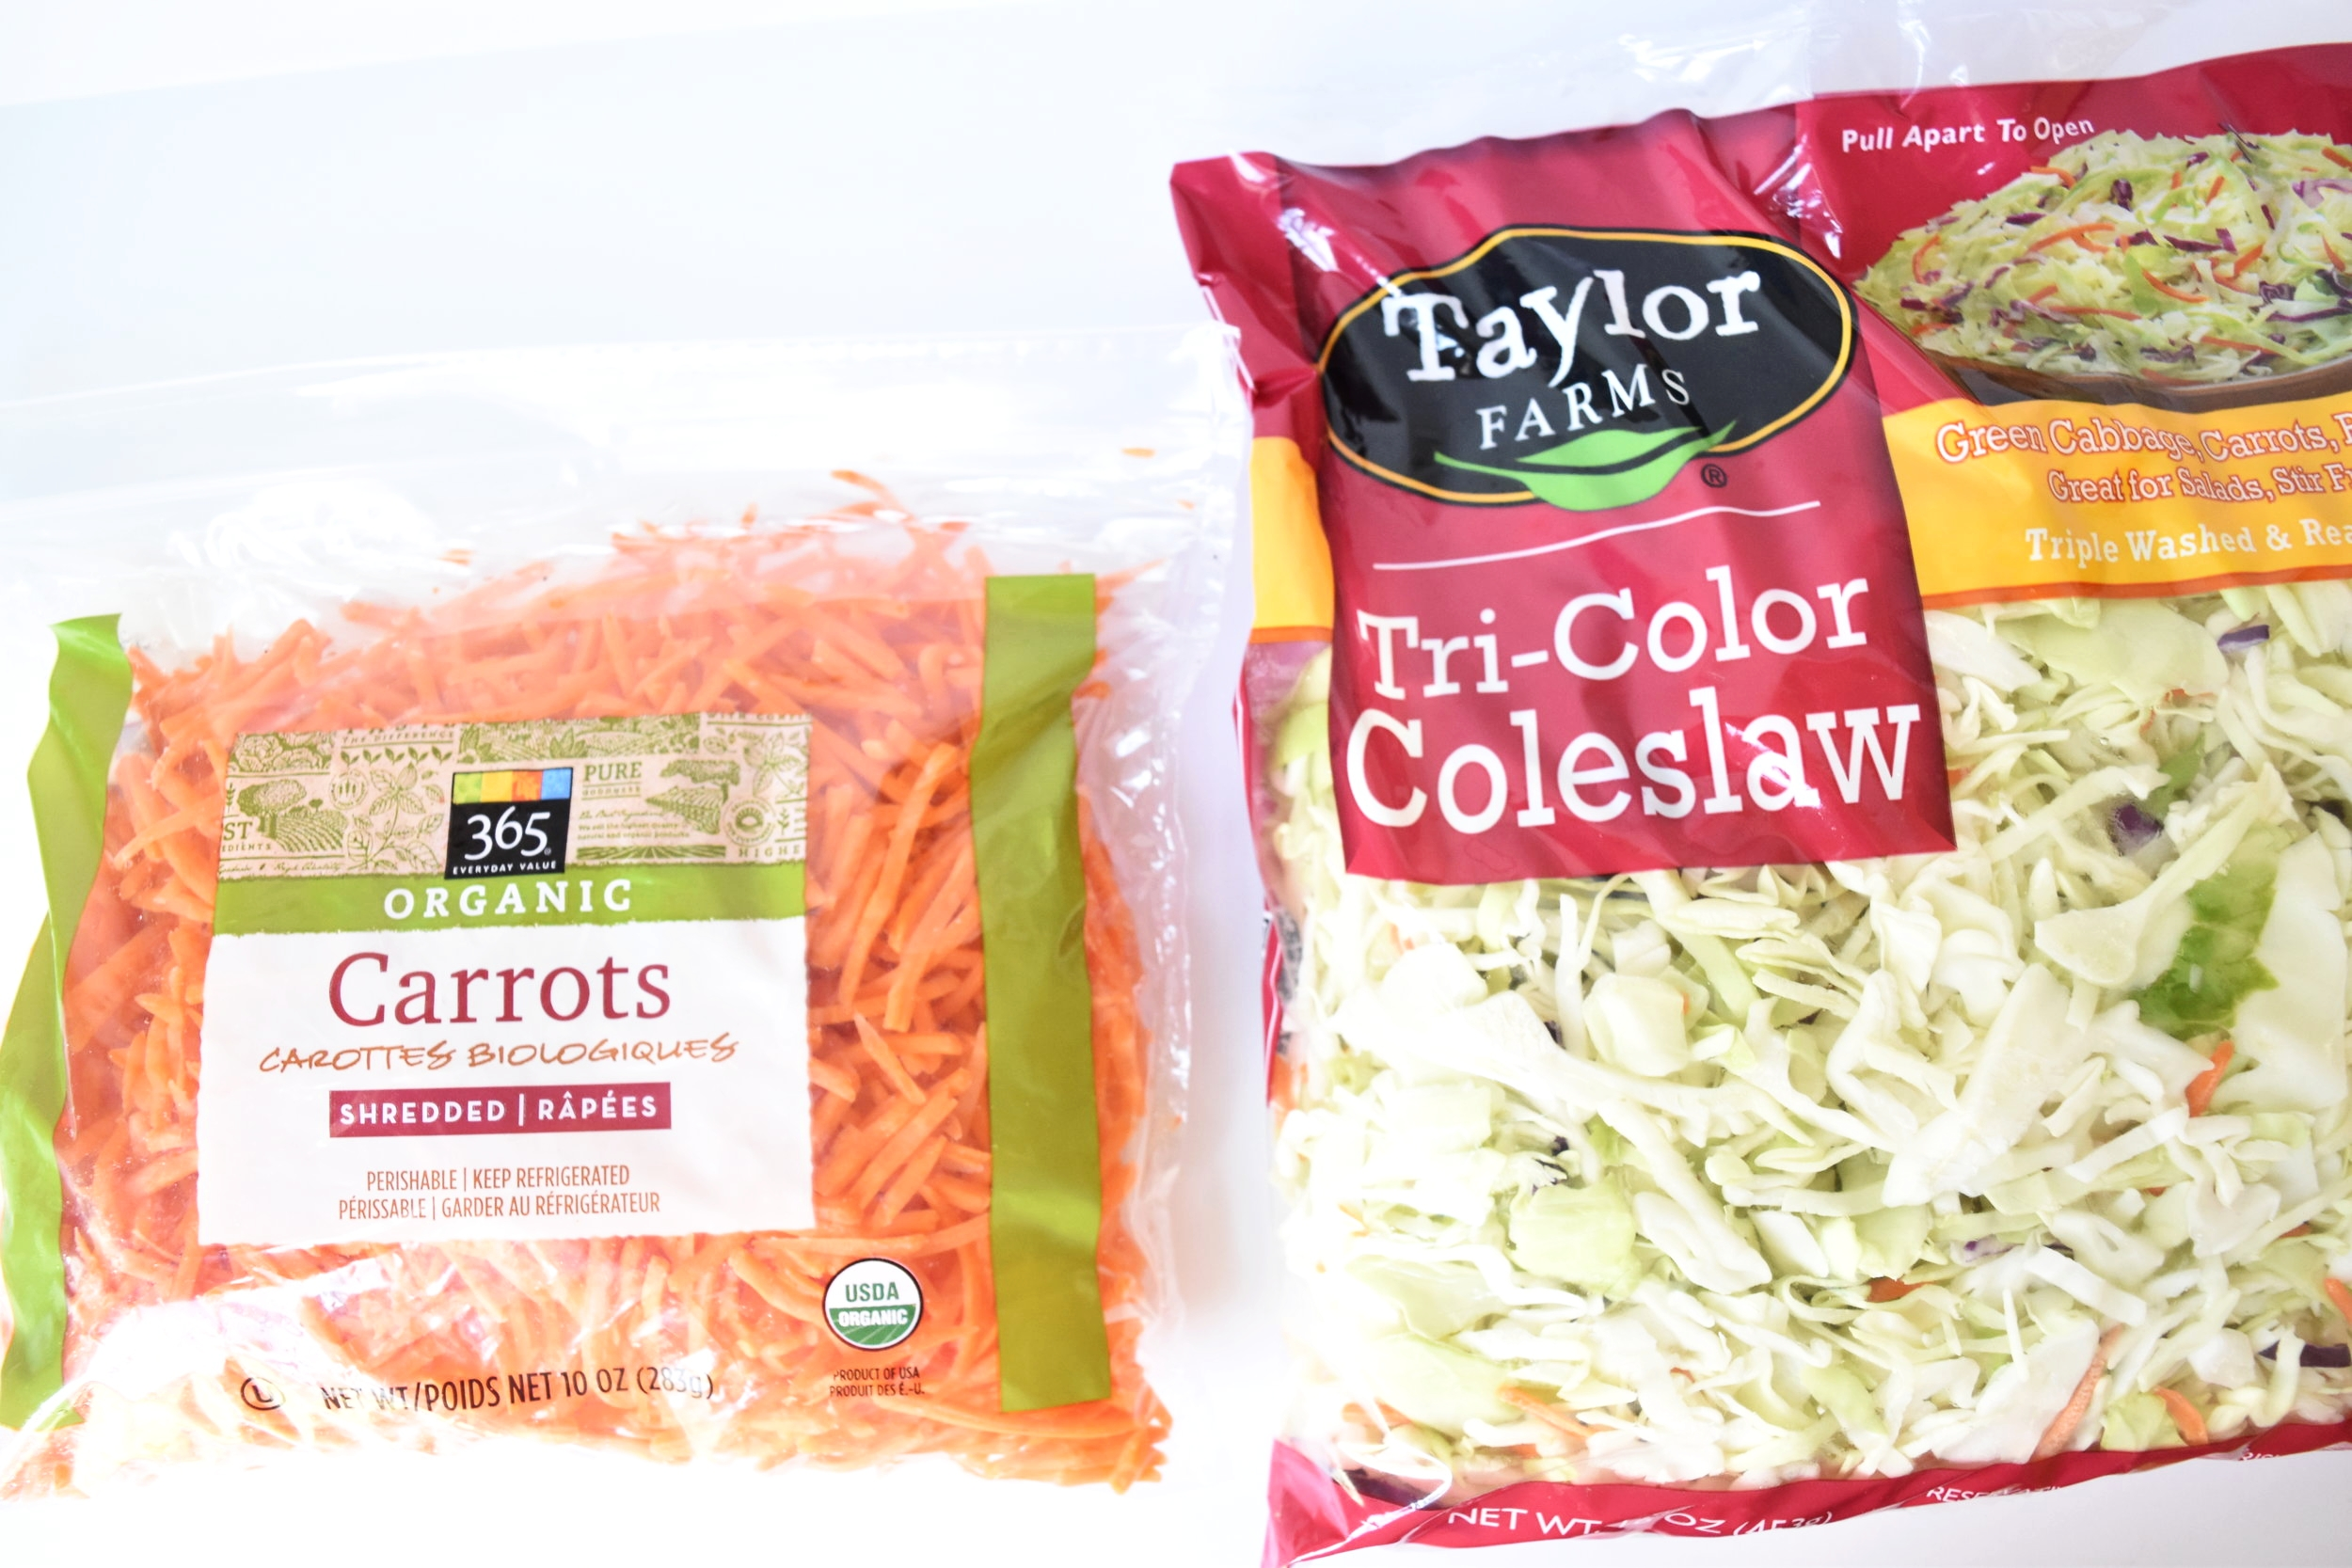 Purchase shredded veggies to make meal prep simple.